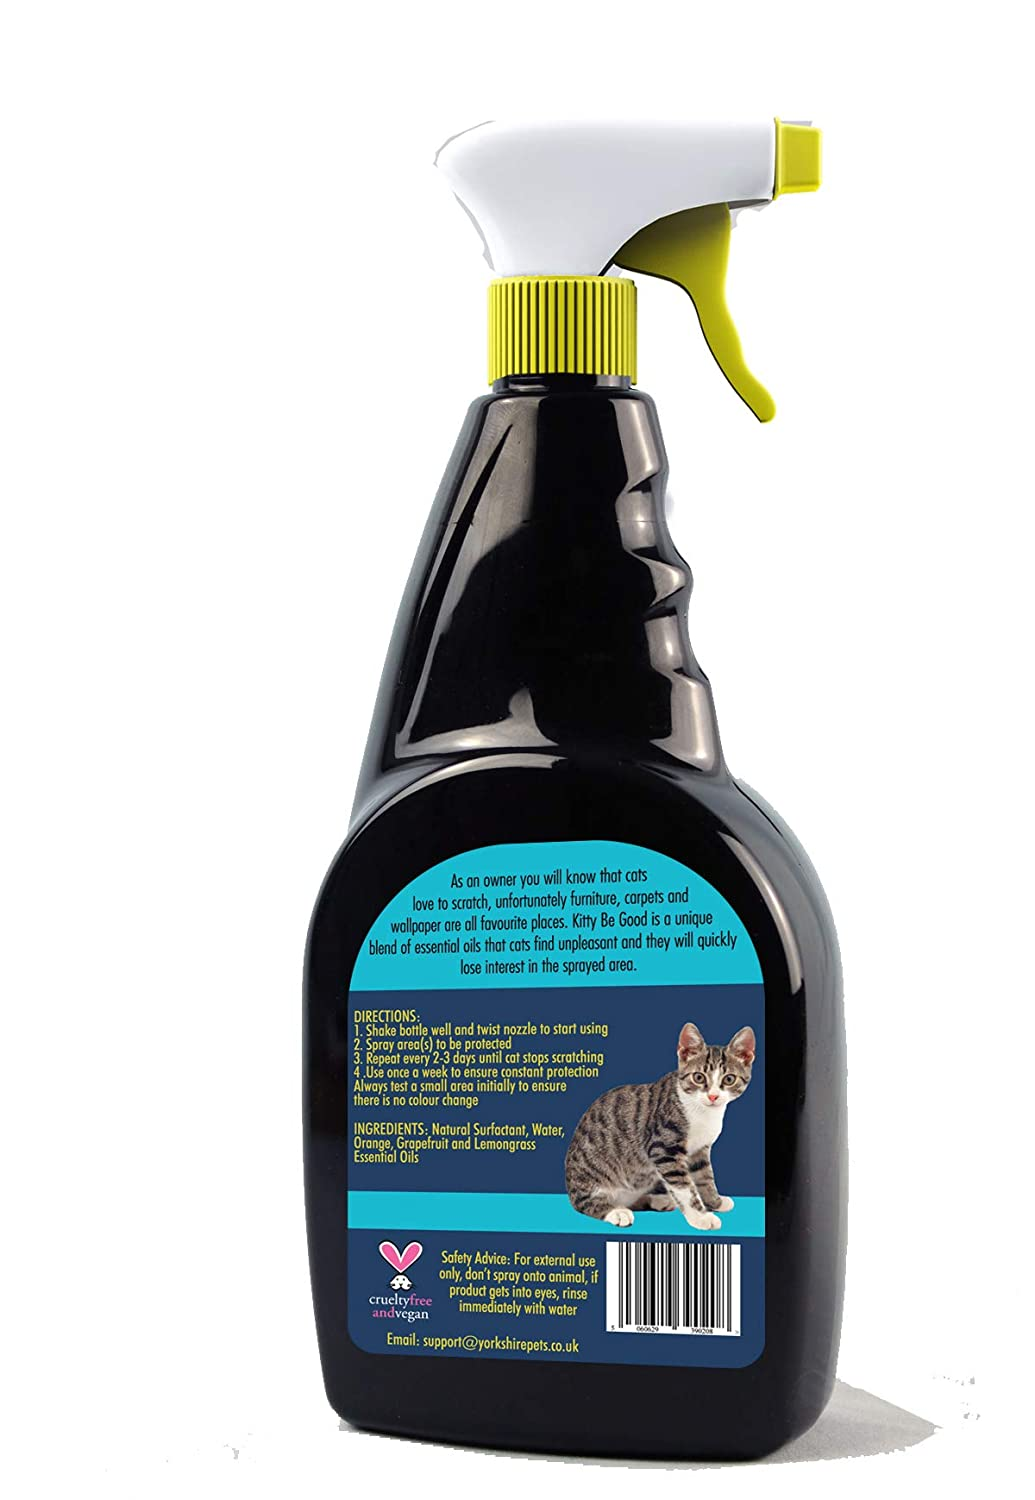 Kitty Be Good Stop Cat Scratching Spray Protect Furniture And Wallpaper  500ml